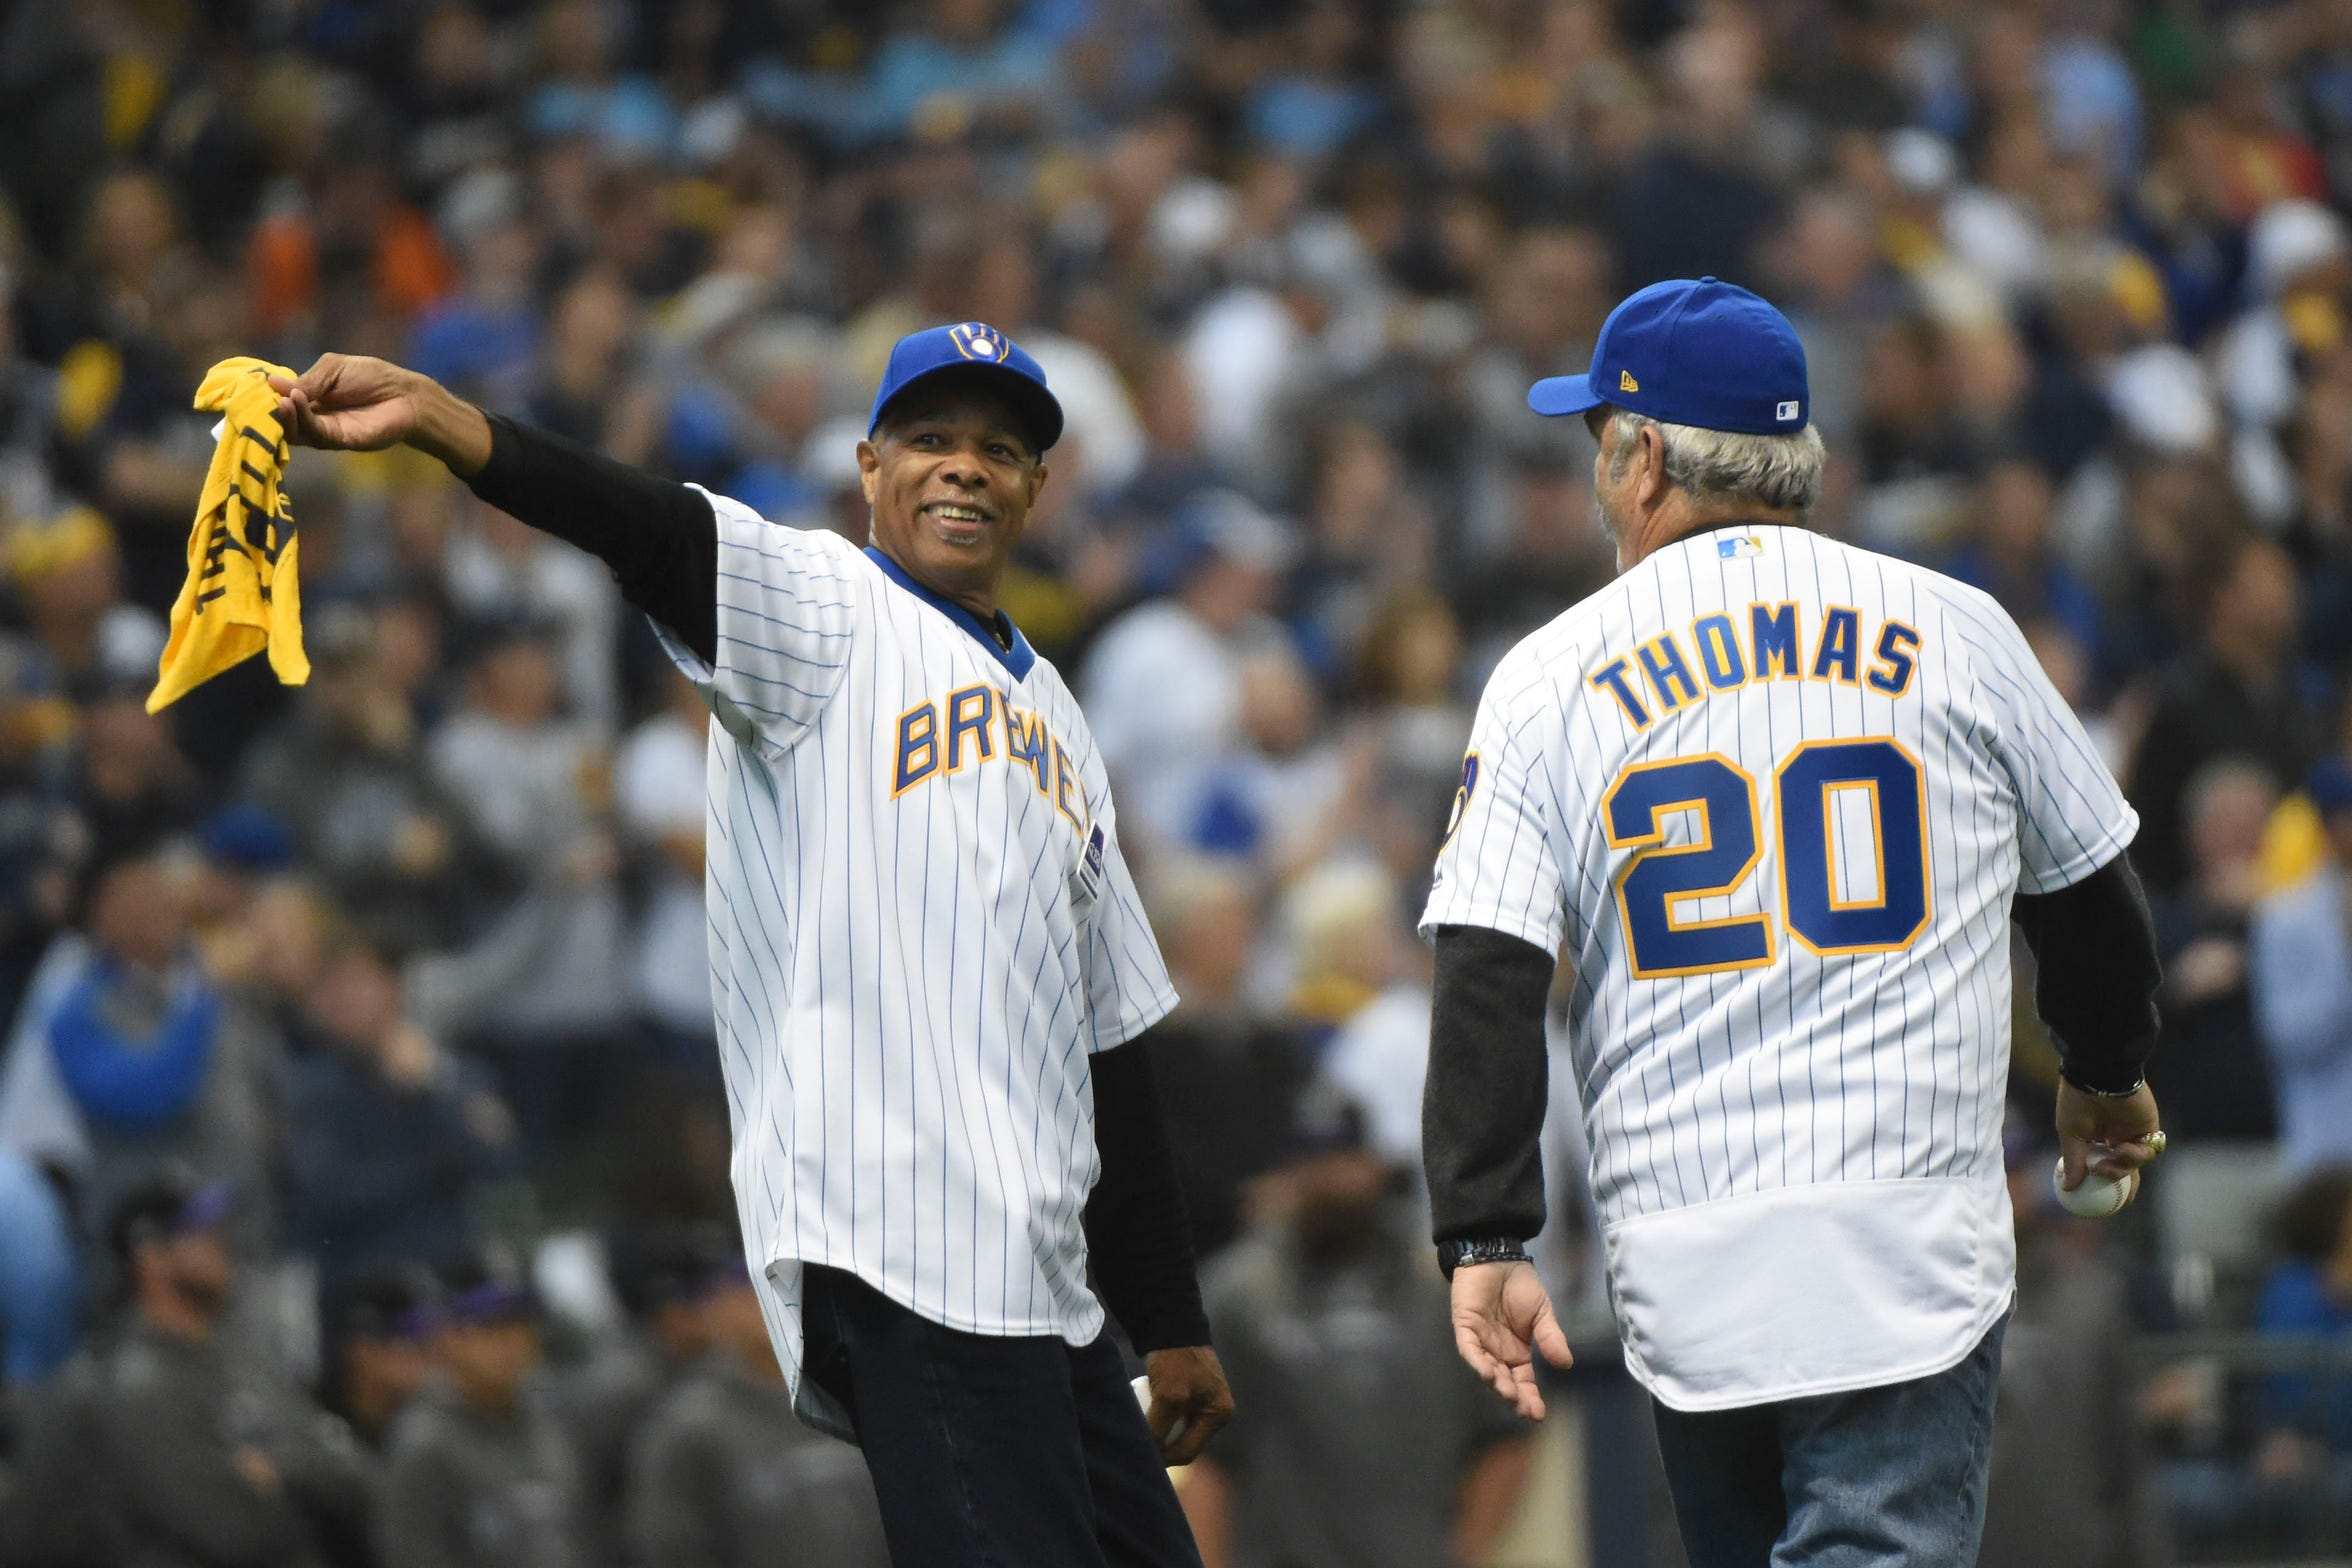 Former Brewers greats Cecil Cooper and Gorman Thomas head out toward the mound to throw out the ceremonial first pitch before Game 2 of the NL Division Series against Rockies on Friday at Miller Park.